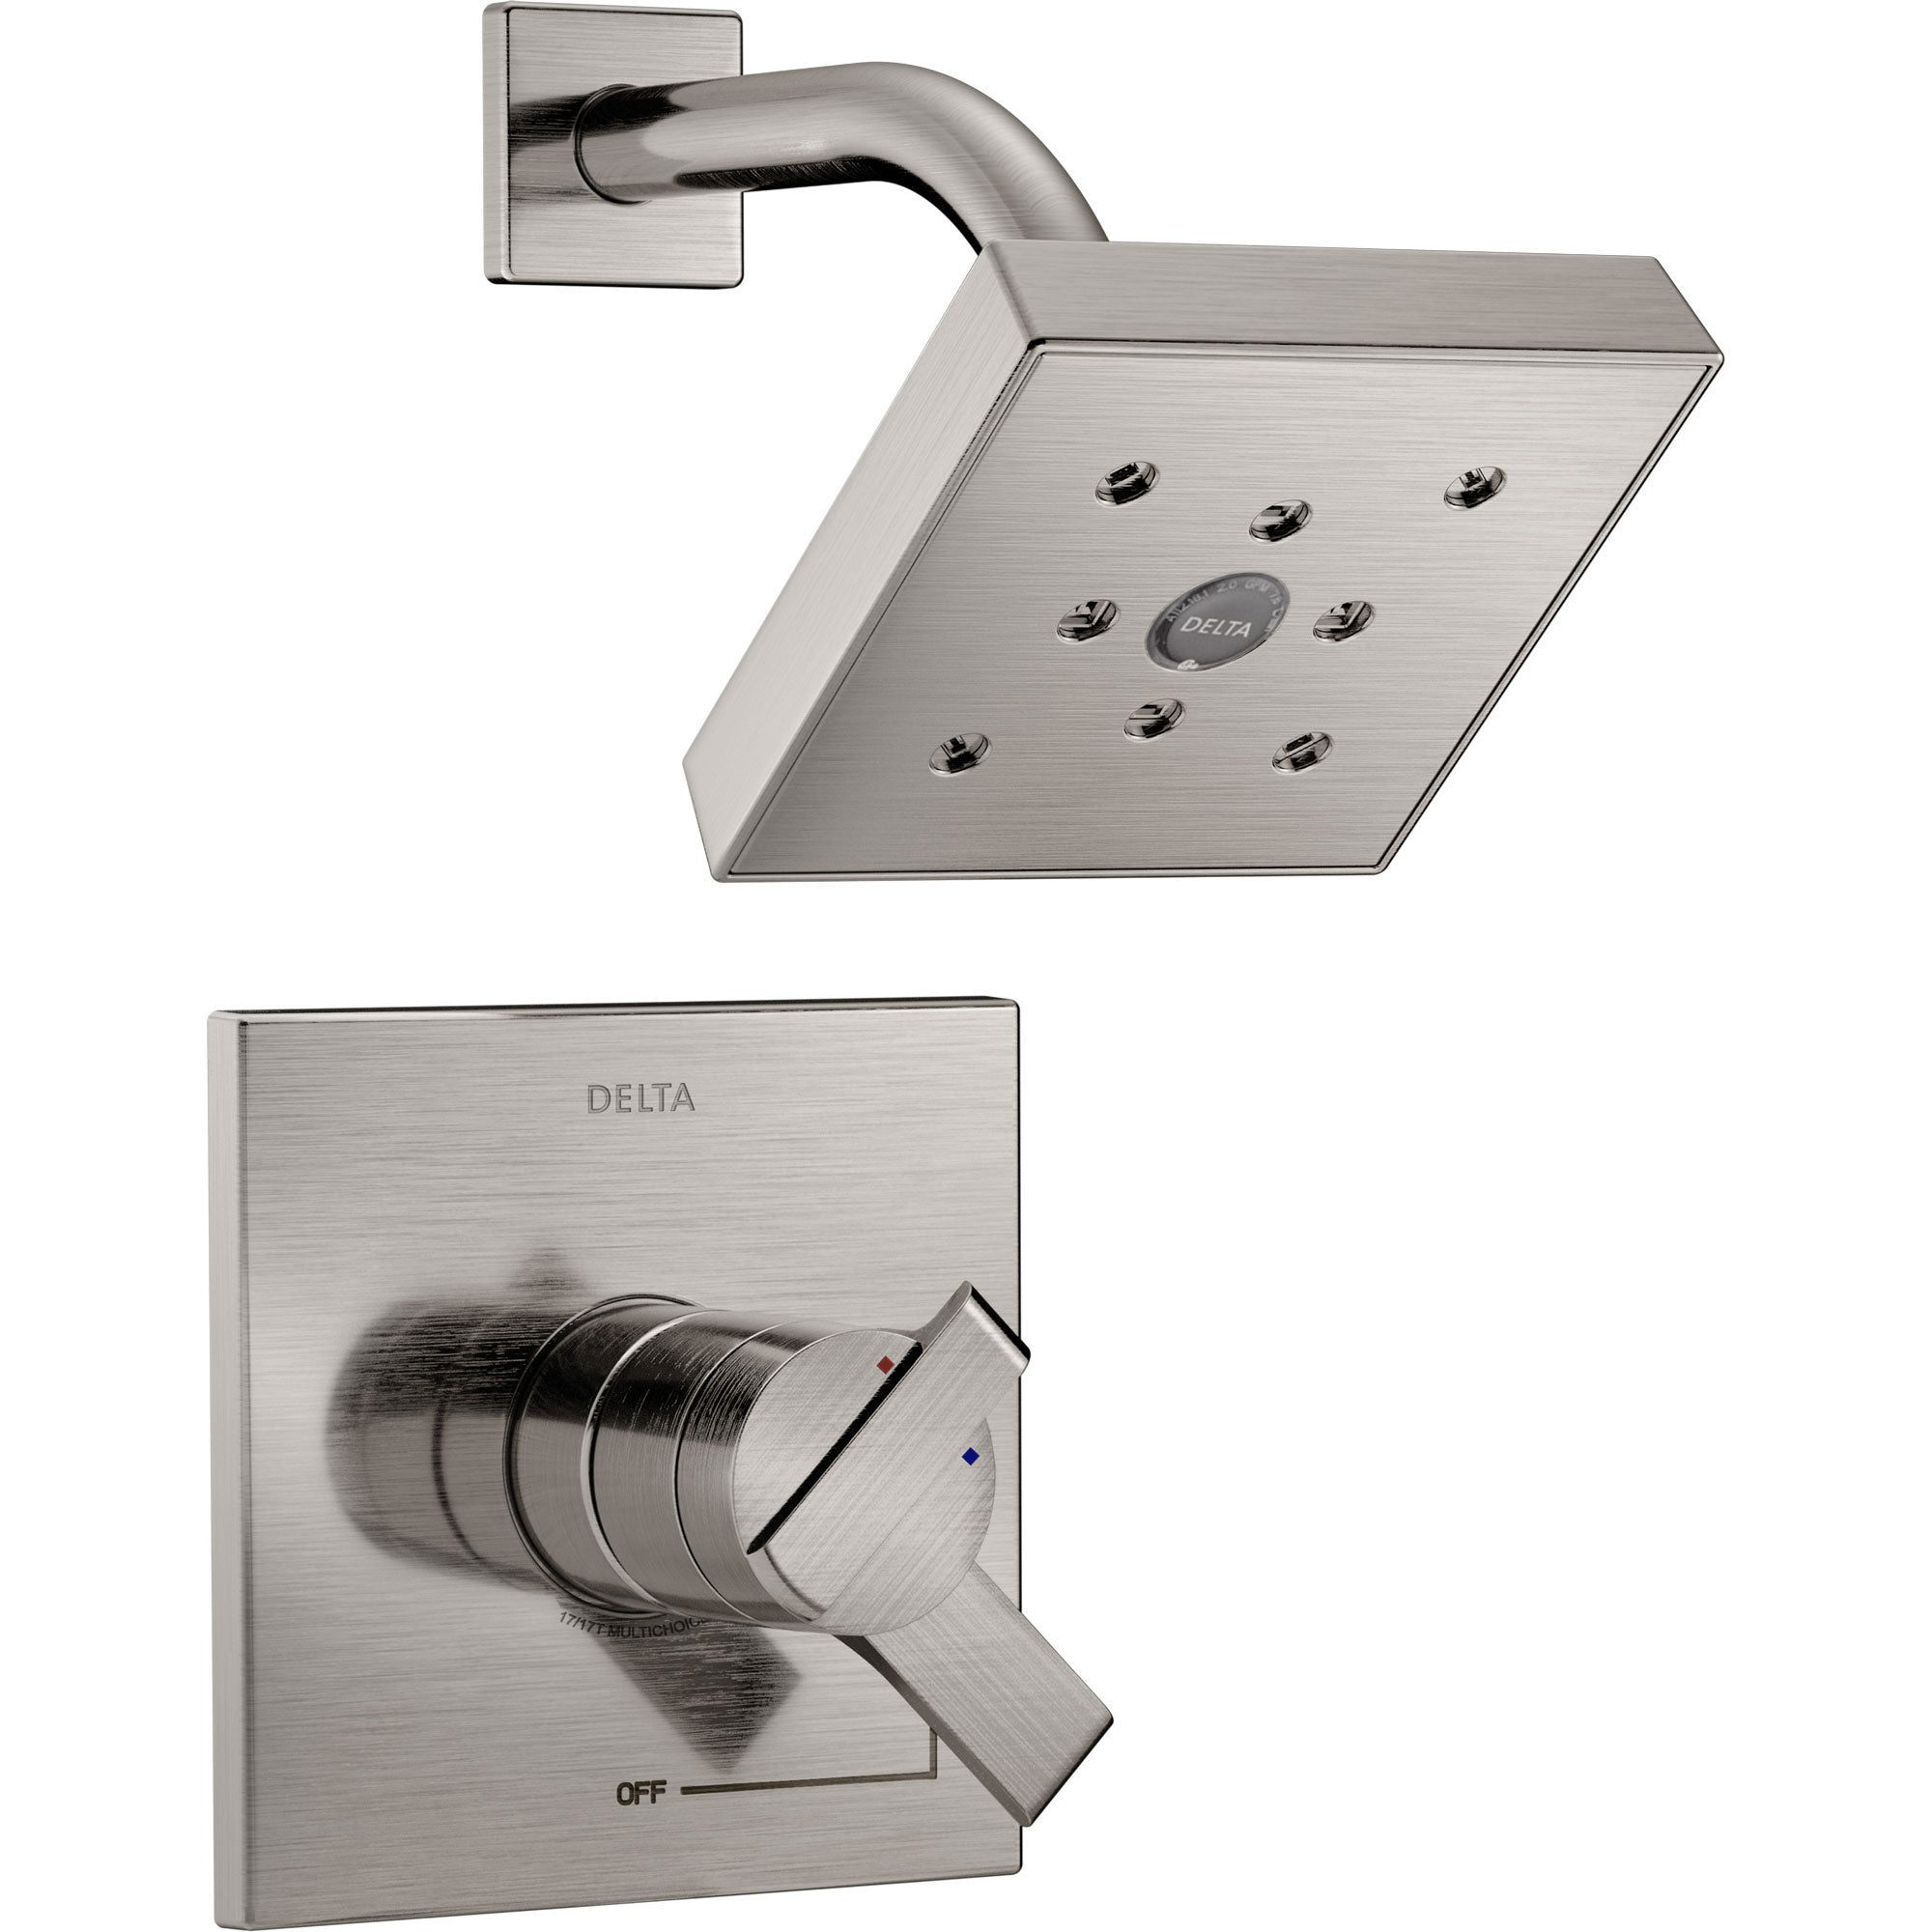 Delta Ara Modern Stainless Steel Finish H2Okinetic Shower Only Faucet with Dual Temperature and Pressure Control INCLUDES Rough-in Valve with Stops D1131V